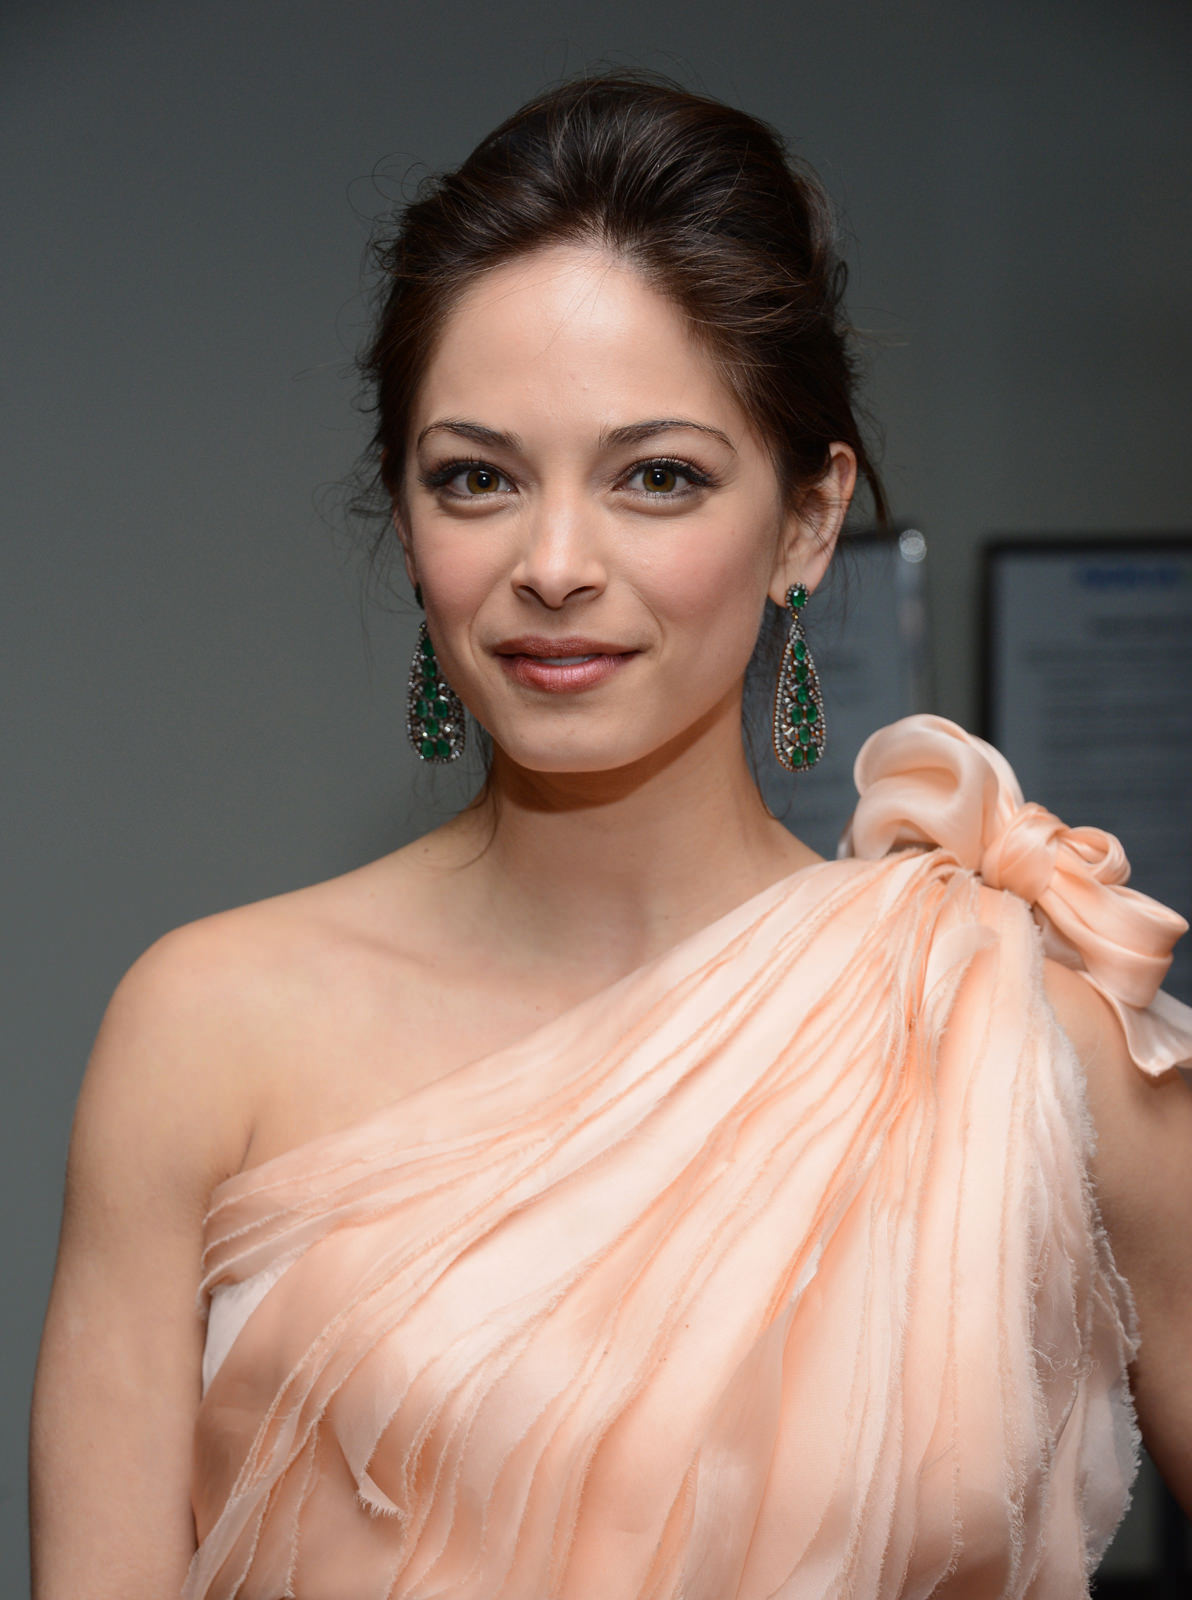 Kristin Kreuk Photo Gallery